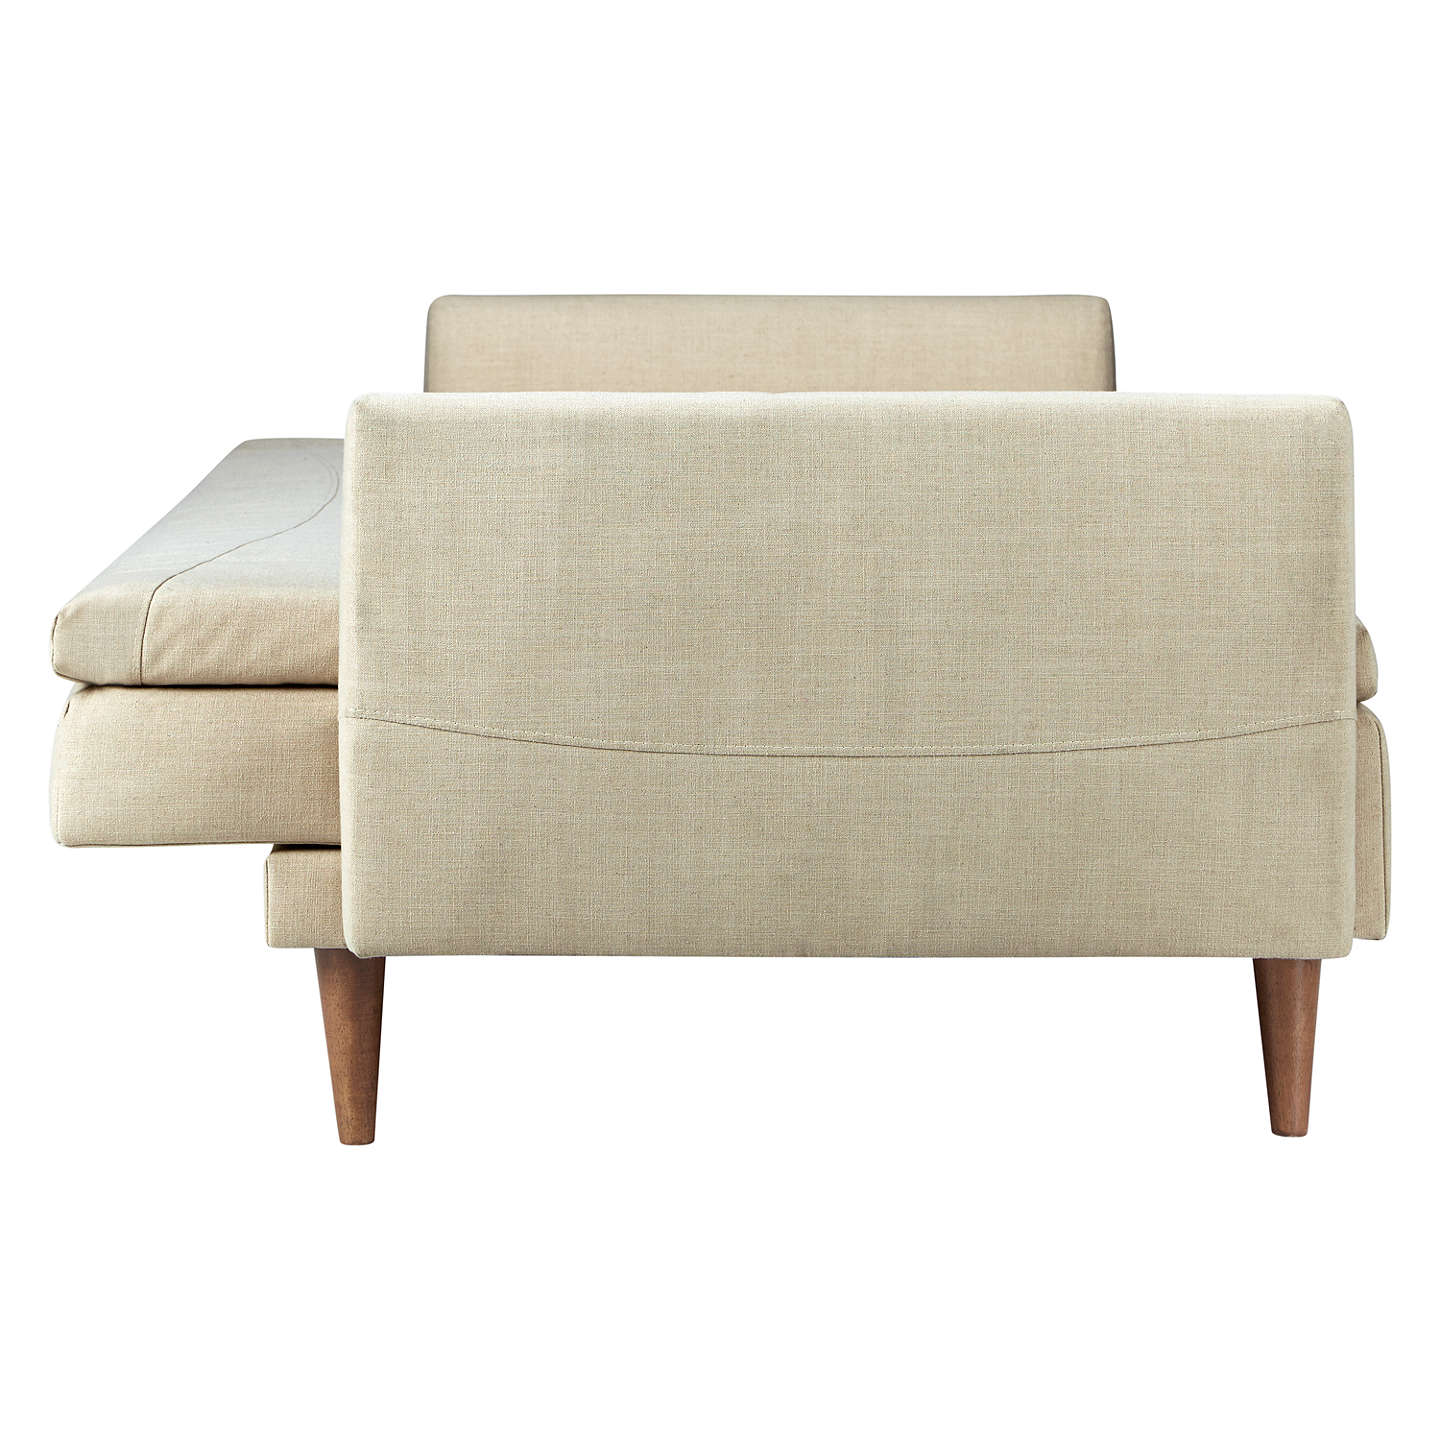 John Lewis Leyton Sofa Bed | Natural at John Lewis